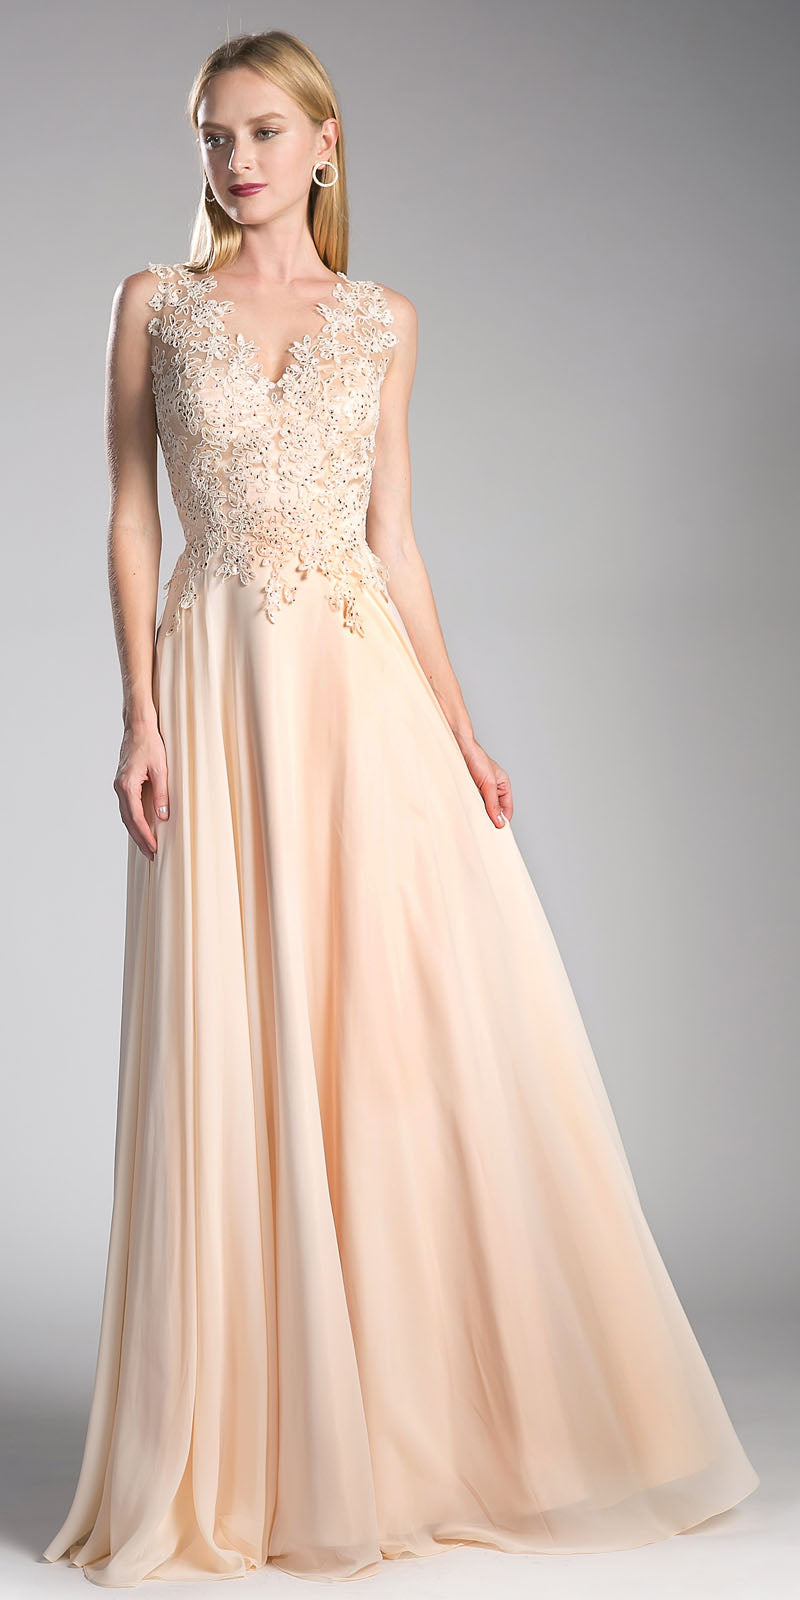 6c3496f5870 Champagne V-Neck Long Formal Dress with Appliqued Bodice. Tap to expand